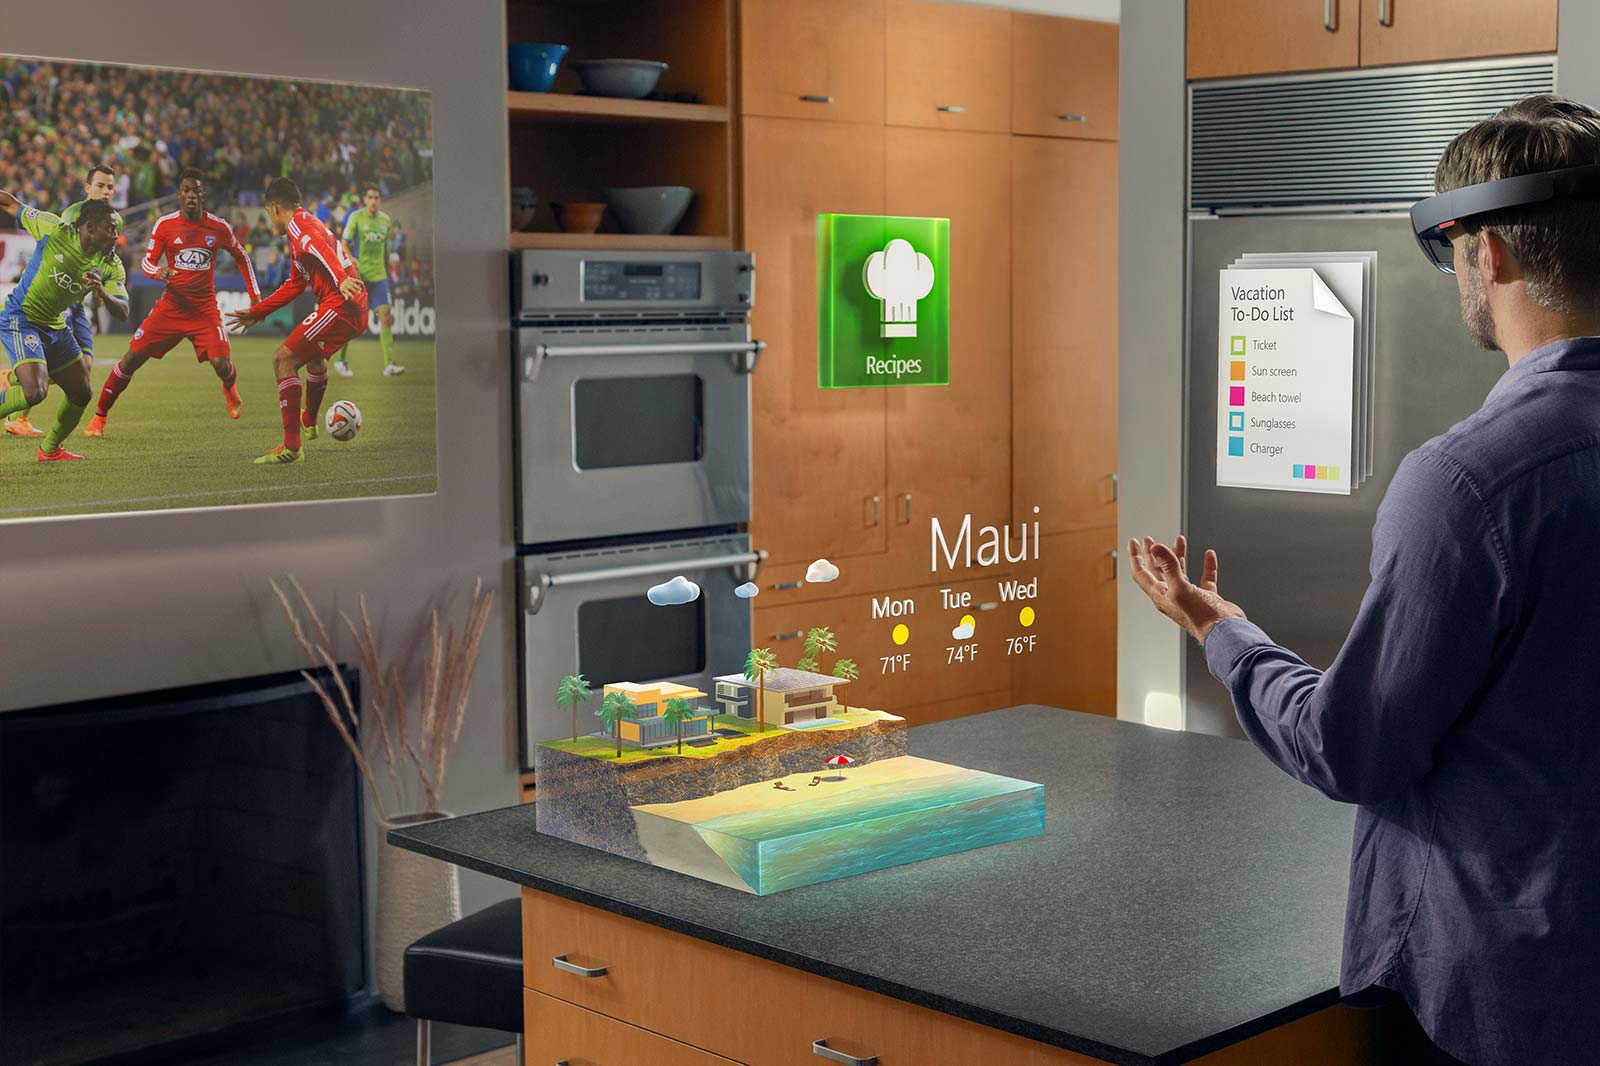 A shoutout to my compadres working on Hololens